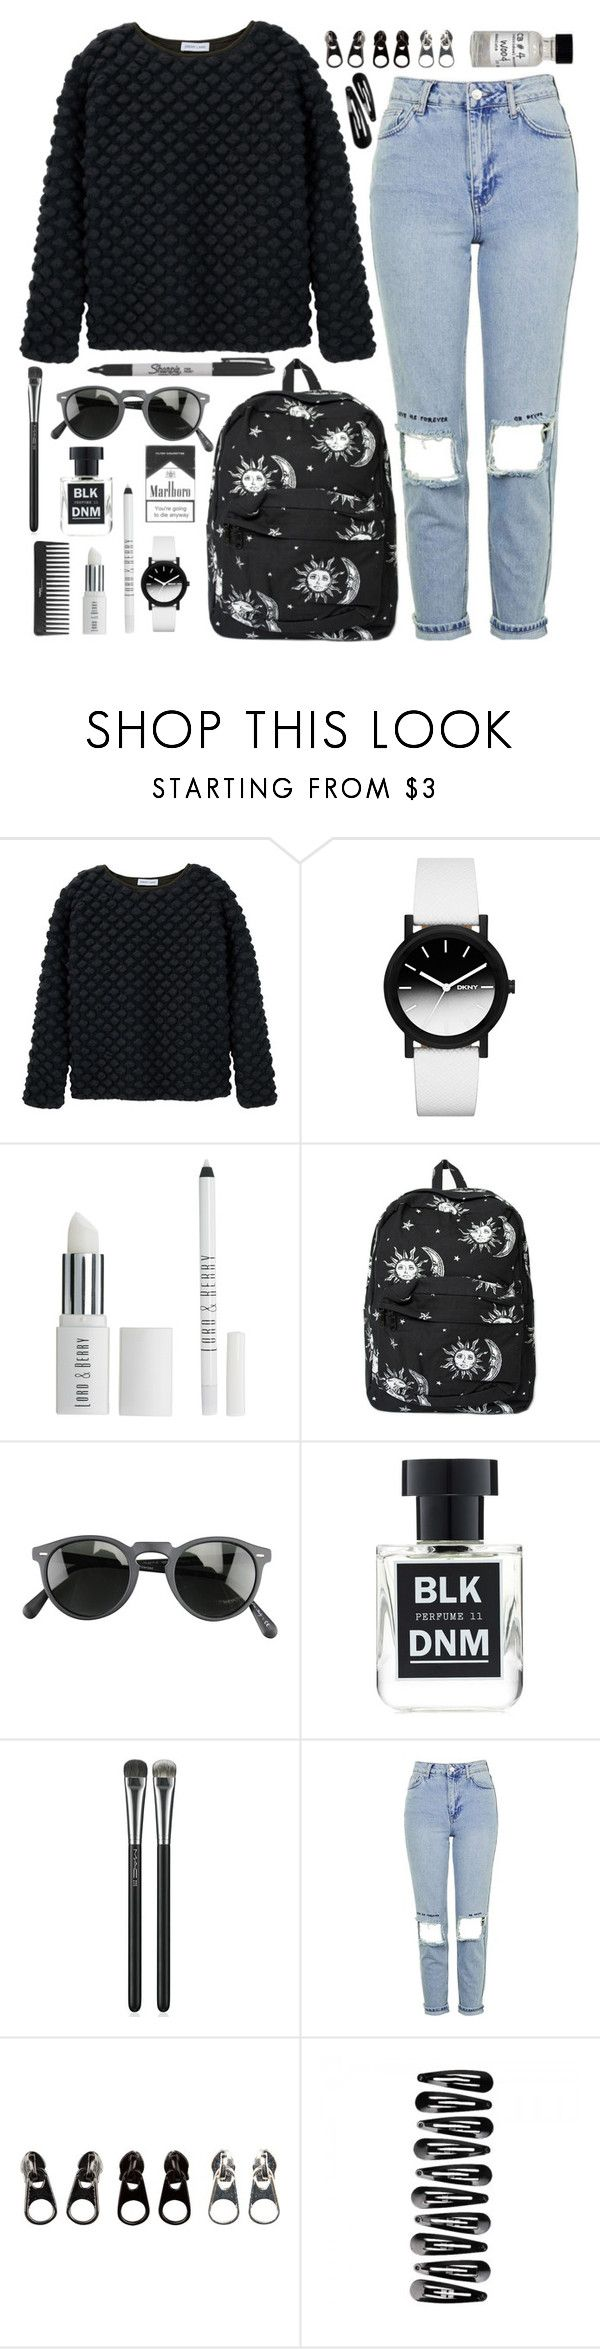 """Outfit 79"" by holass ❤ liked on Polyvore featuring Jeremy Laing, DKNY, Lord & Berry, Motel, Sharpie, Oliver Peoples, BLK DNM, MAC Cosmetics, Topshop and Full Tilt"